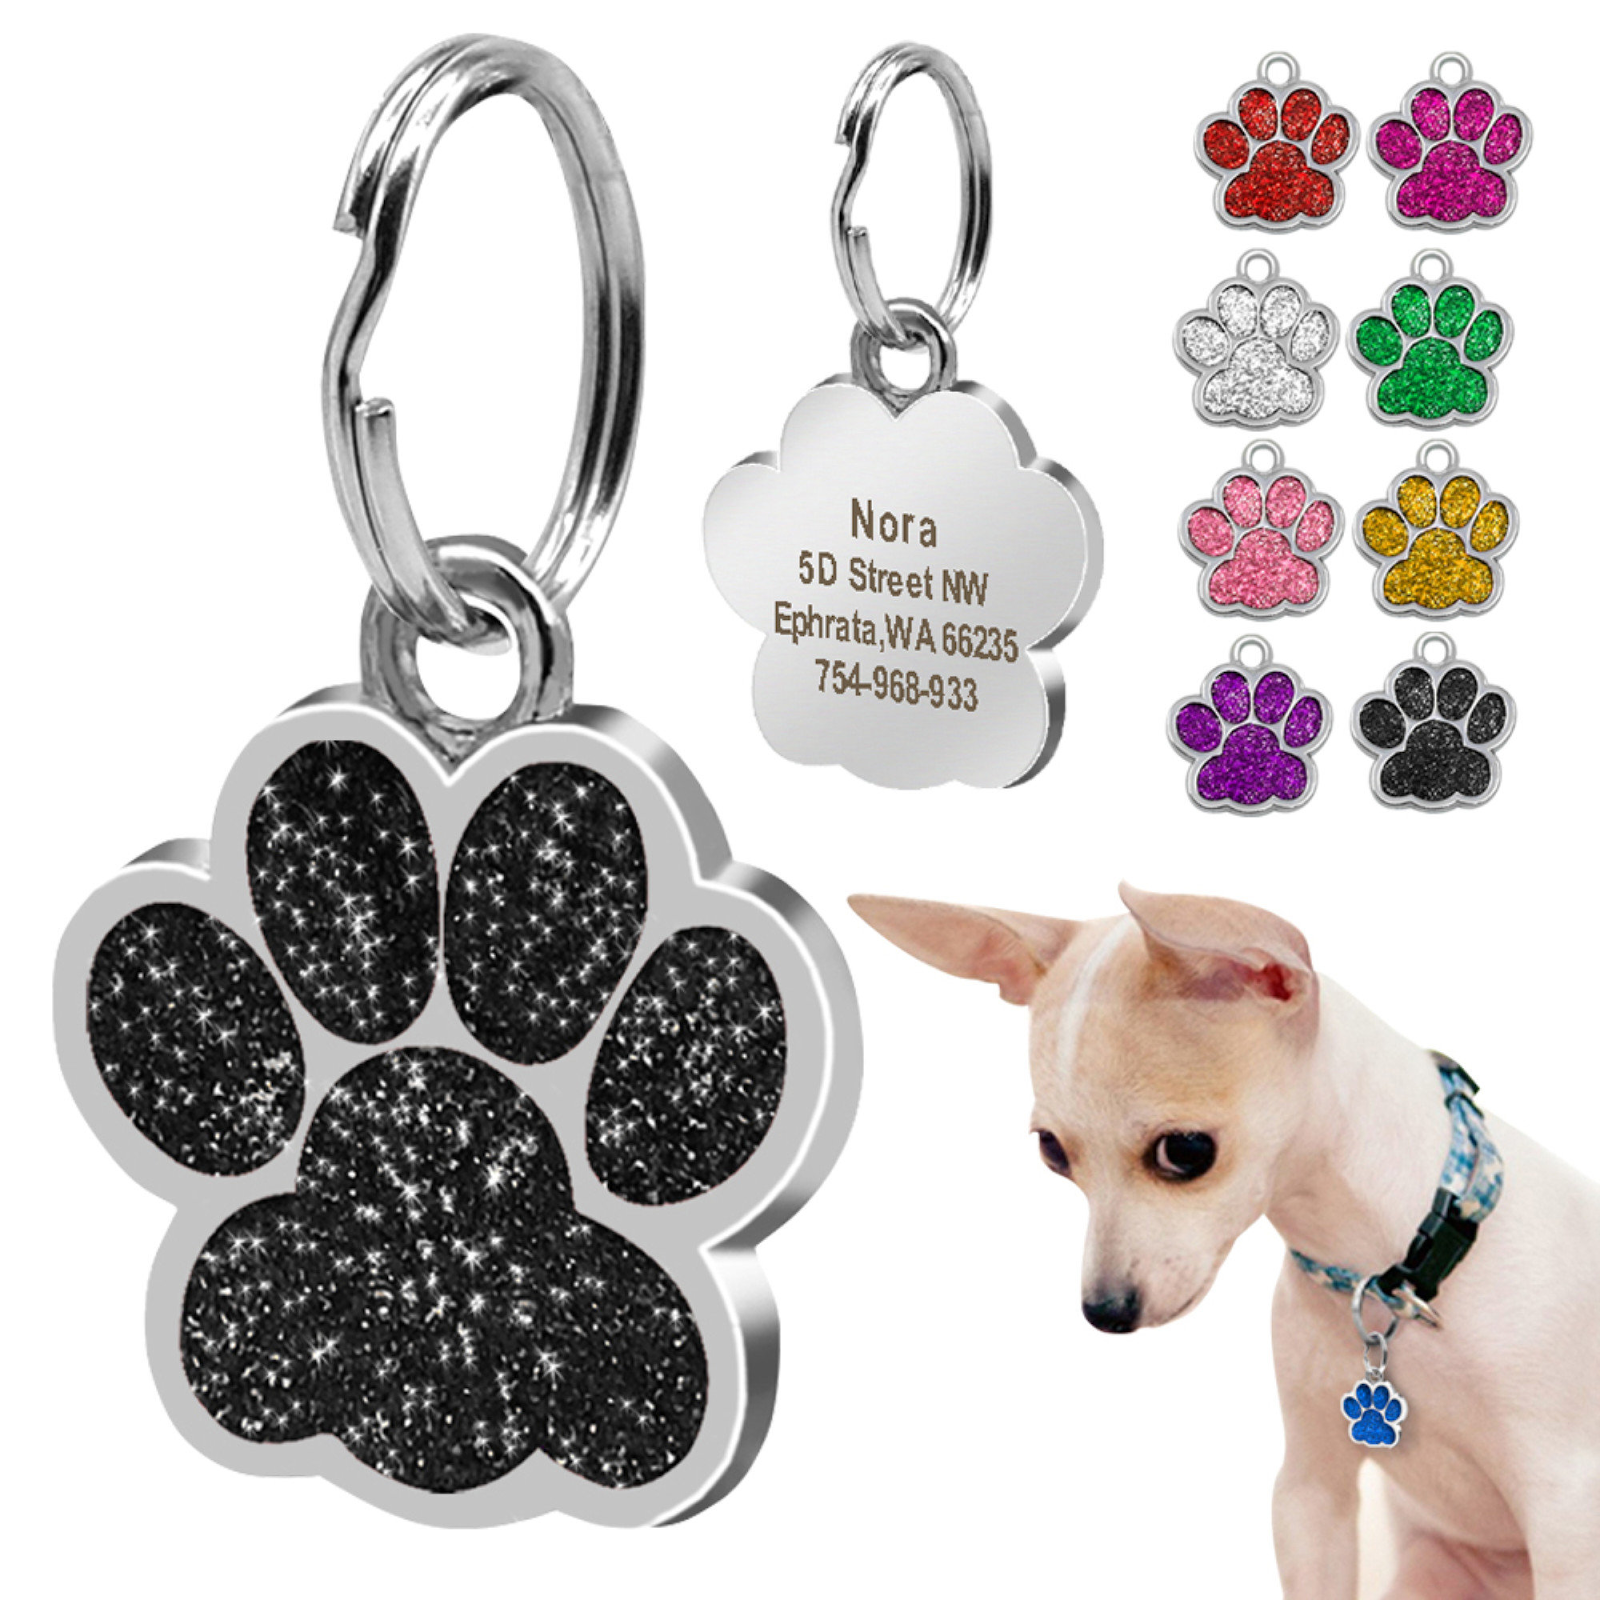 Dogs Personalized Name Tag Goes With A Leash Harness